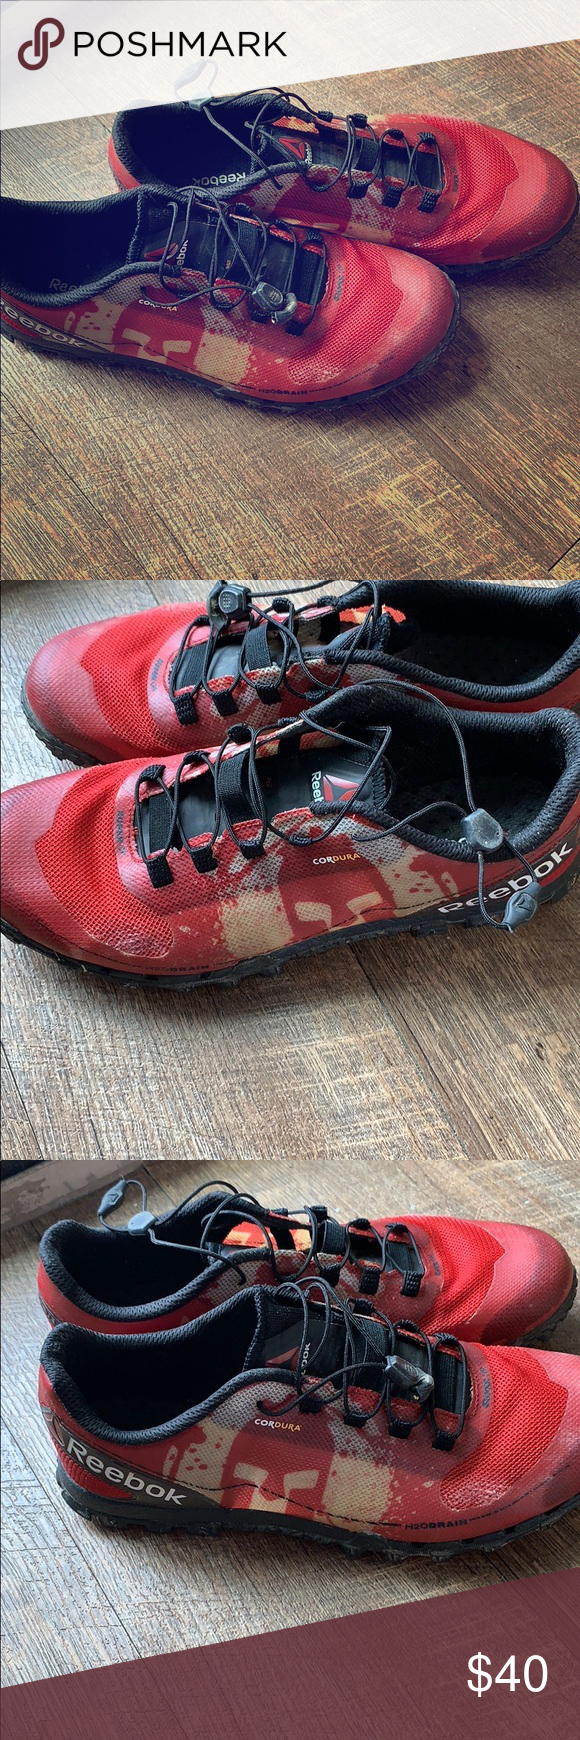 more photos c018d c2dfa Reebok all terrain superior spartan shoes Wore once for a Tough  Mudder...excellent condition. One of the best shoes for obstacle course  races and hiking.